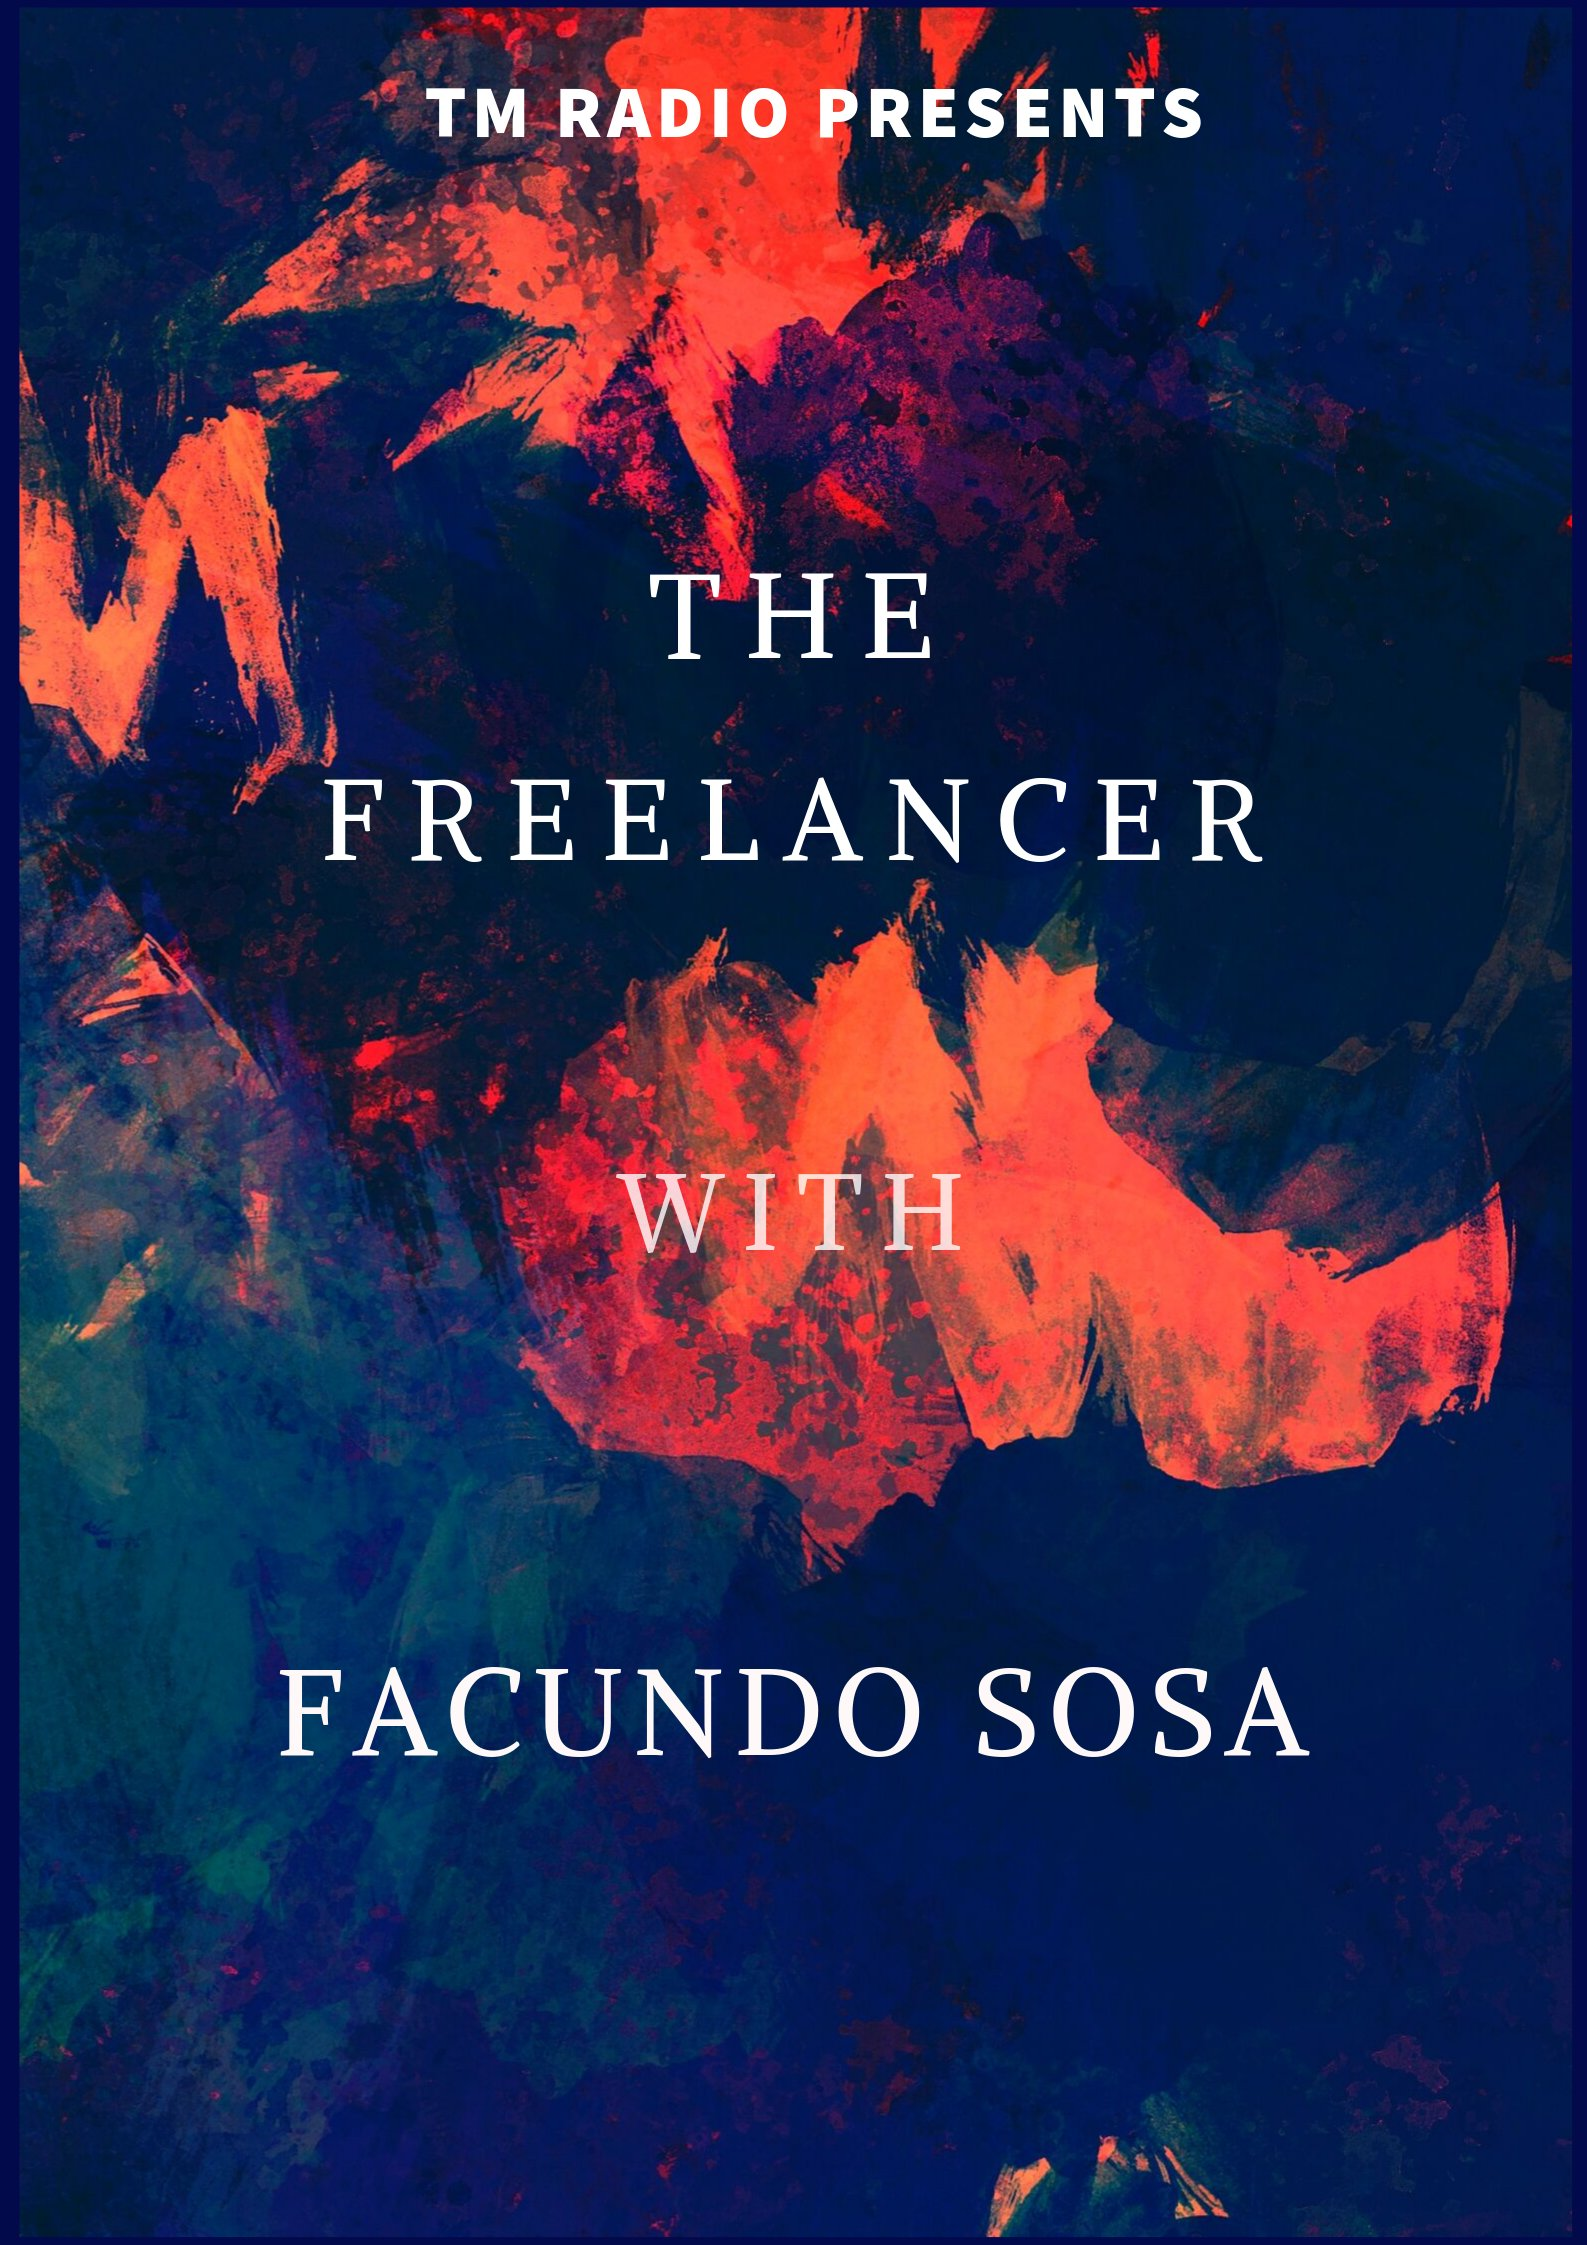 The Freelancer :: Episode 009 (aired on January 25th) banner logo